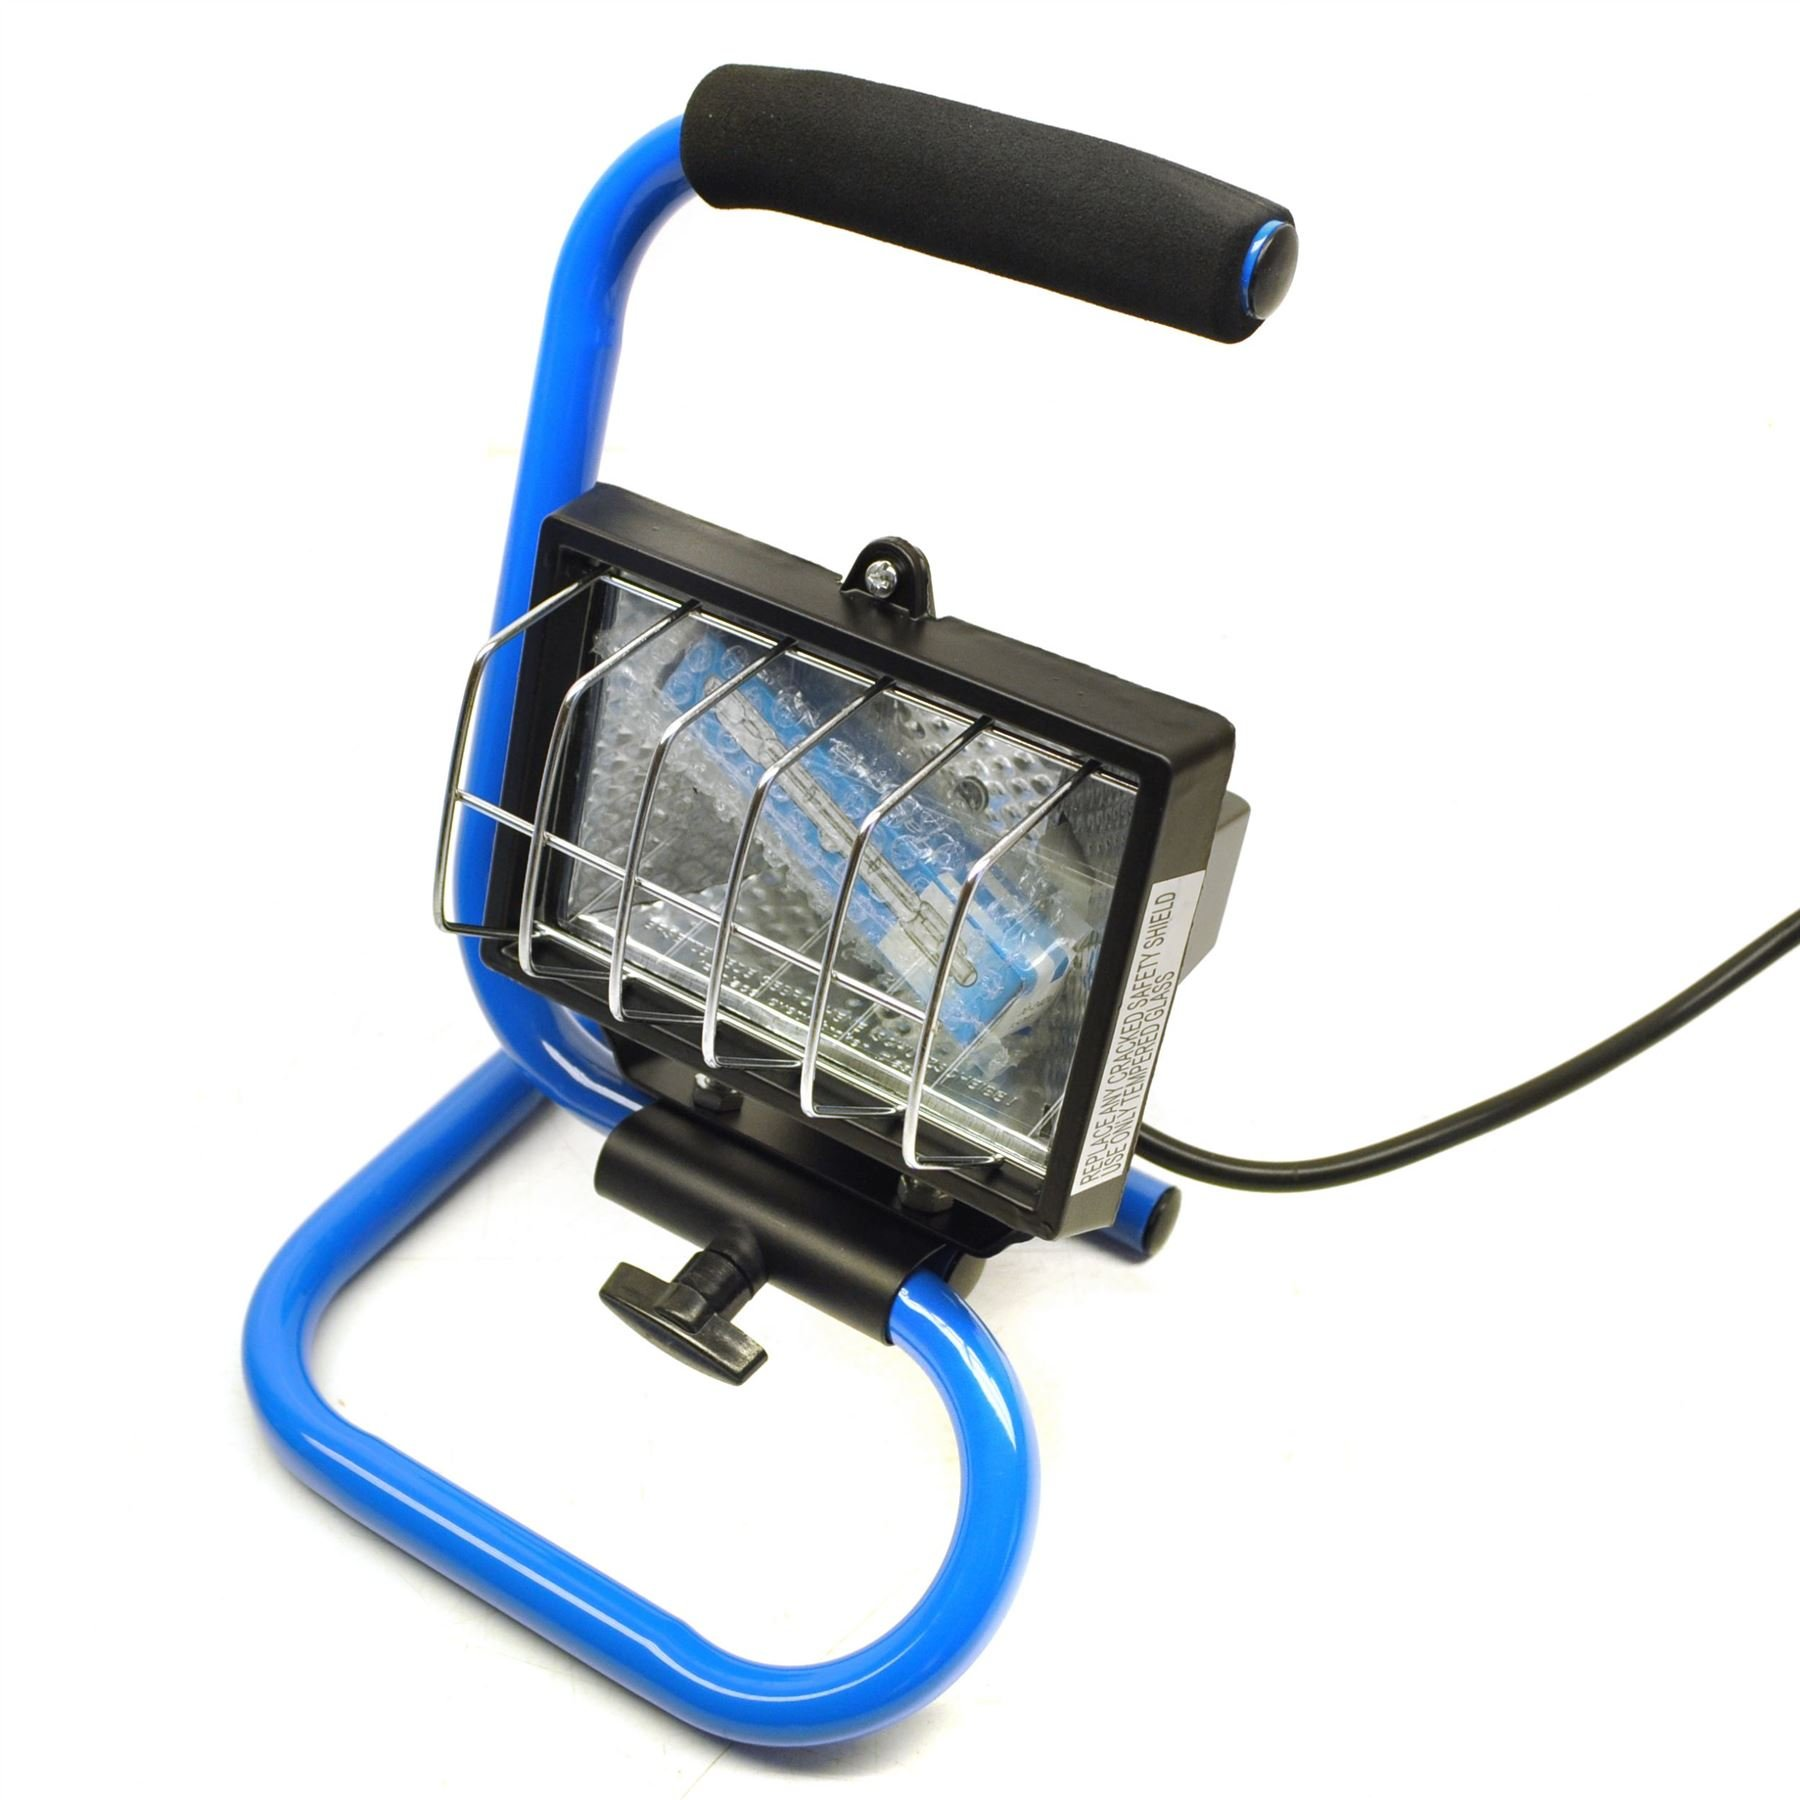 Halogen Work Lamp / Flood Light 150w Portable Garage / Site with Stand SIL216